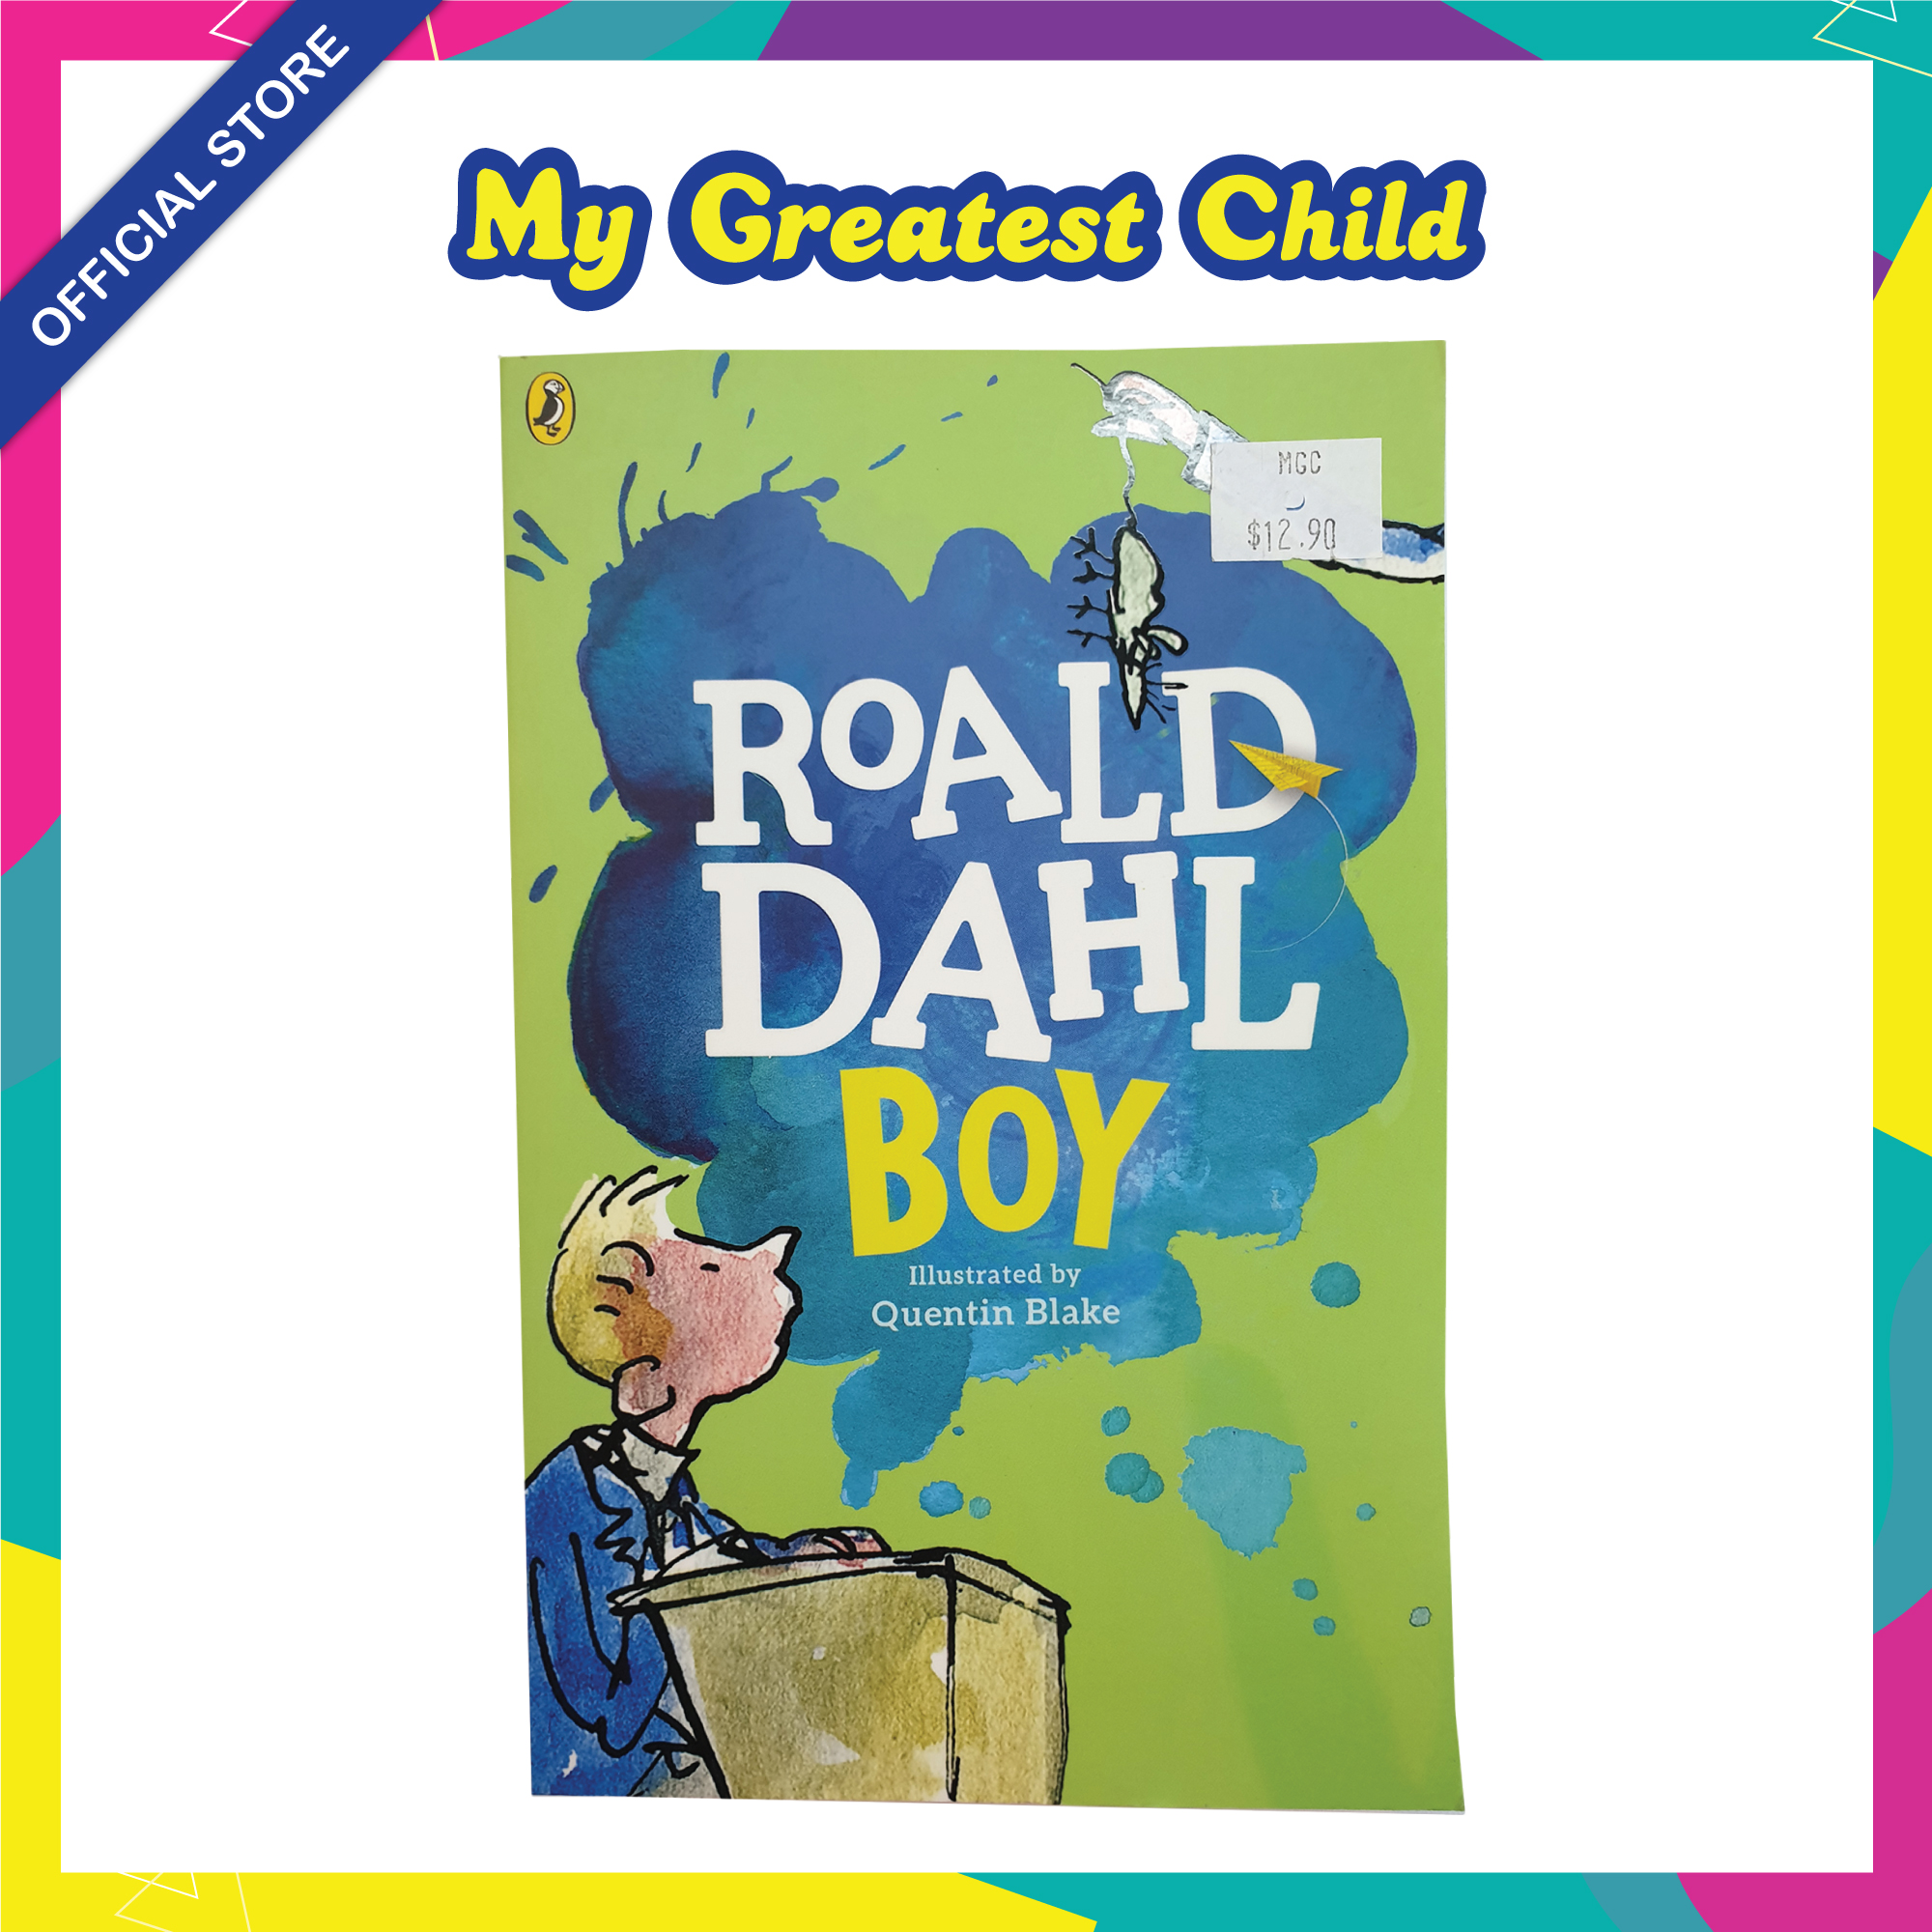 Boy - Roald Dahl English Paperback Childrens Book (For Ages 7+)